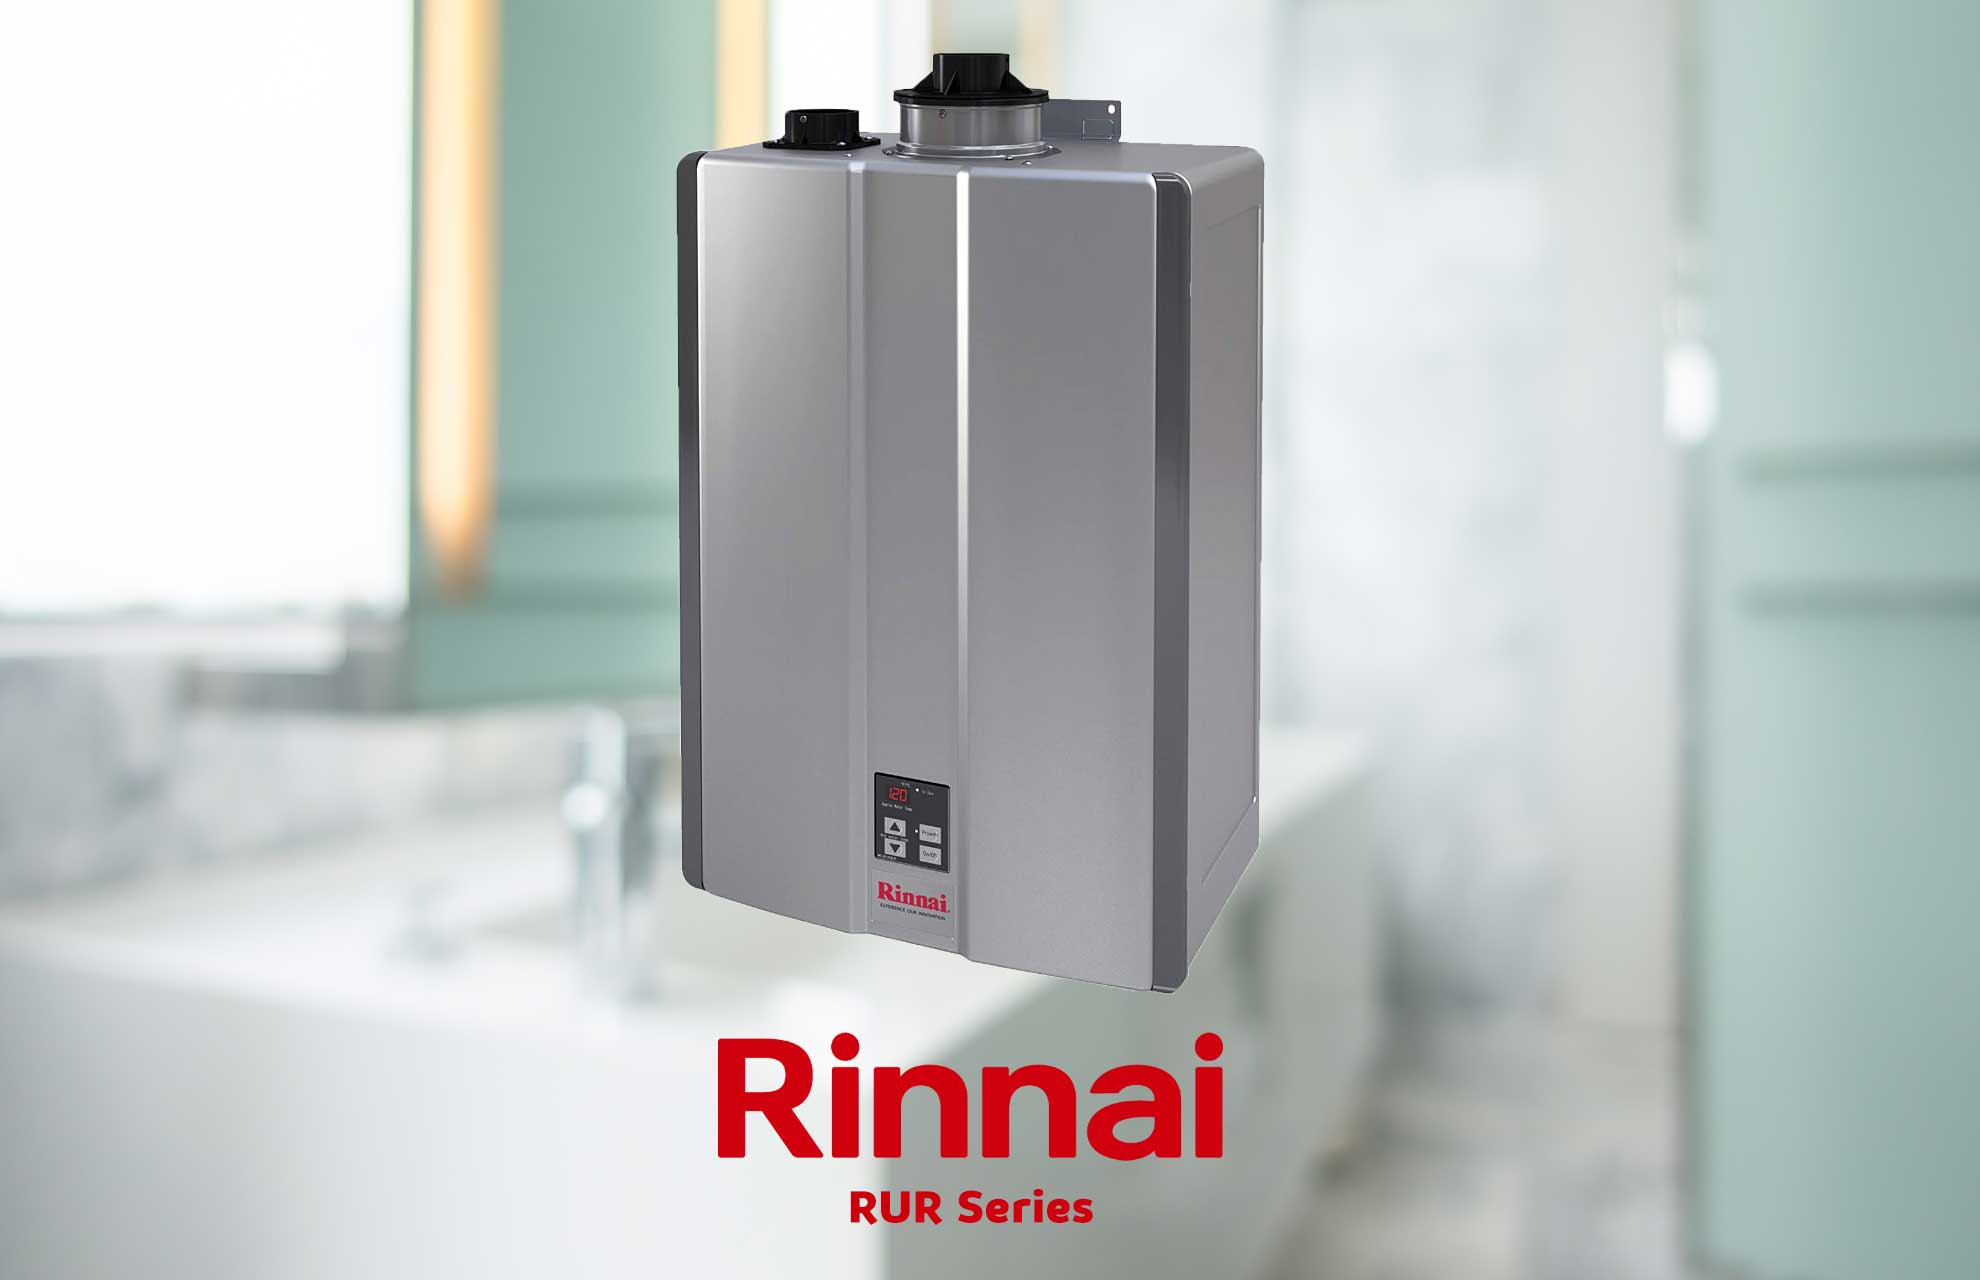 Rinnai RUR199iN Tankless Water Heater